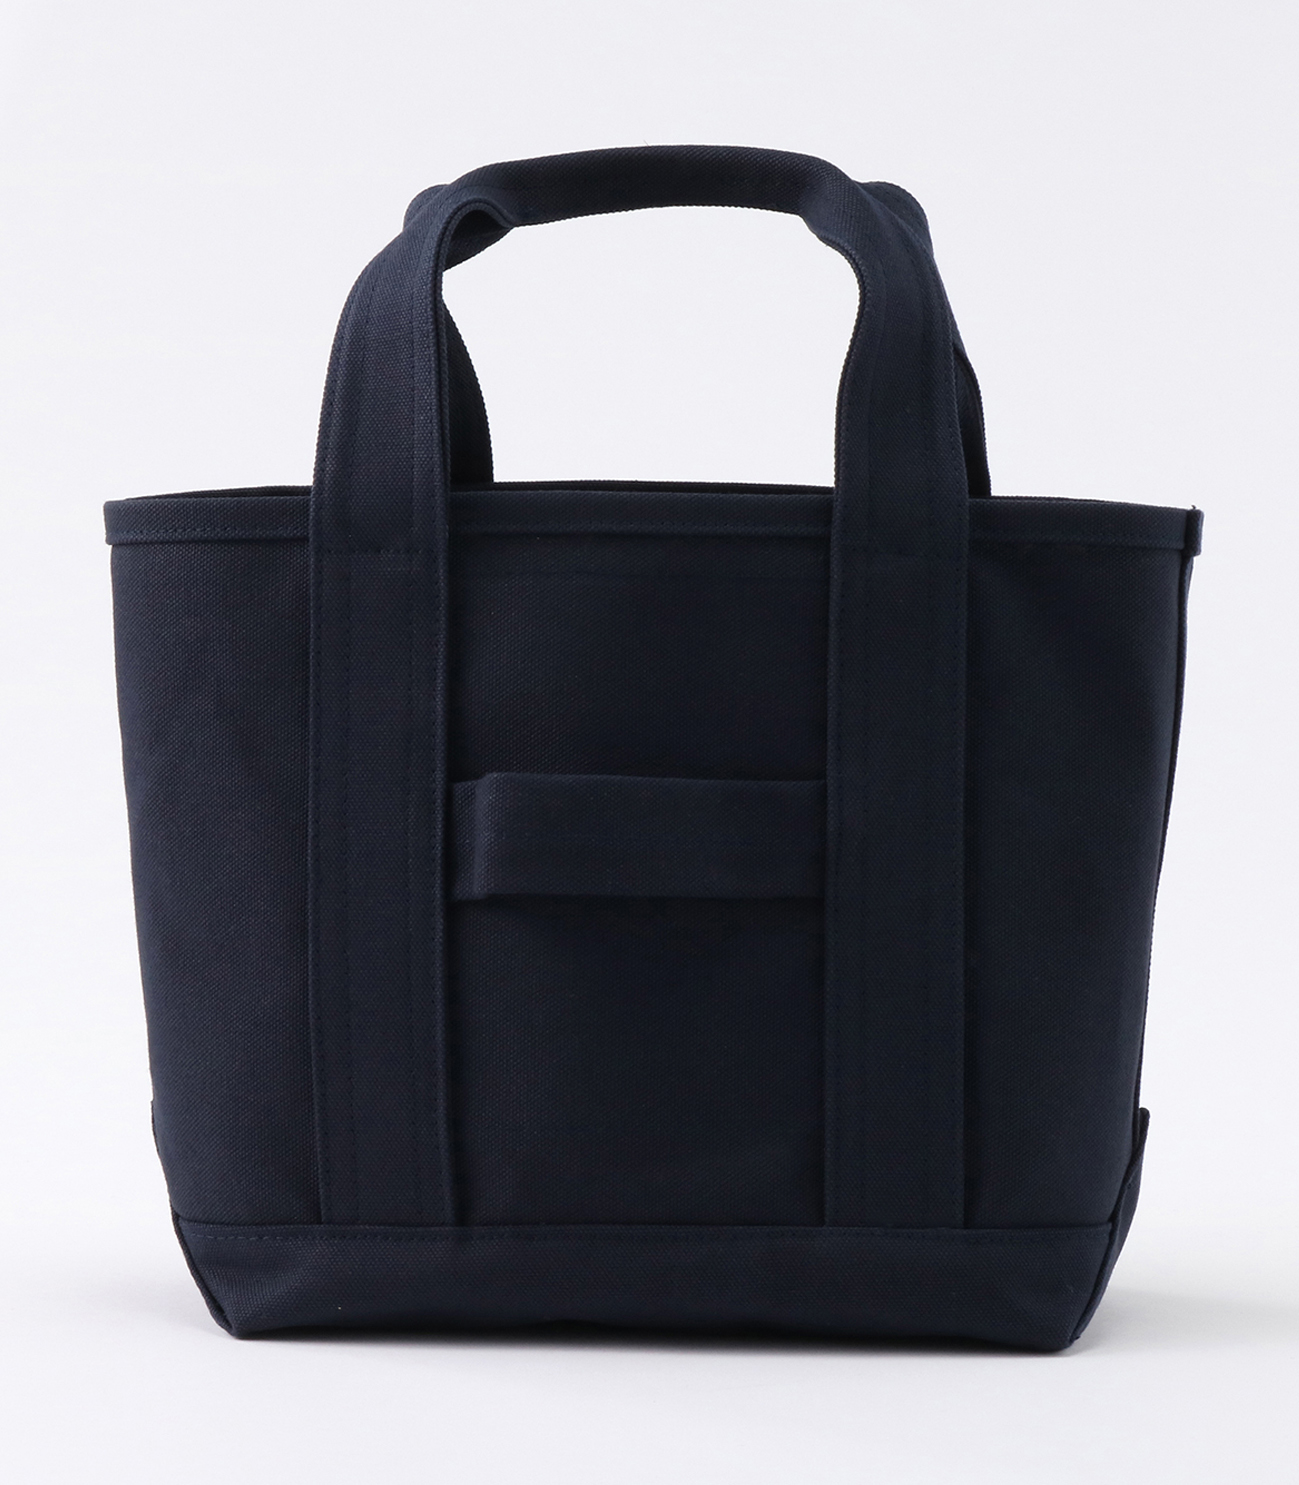 mini tote bag 詳細画像 navy 3